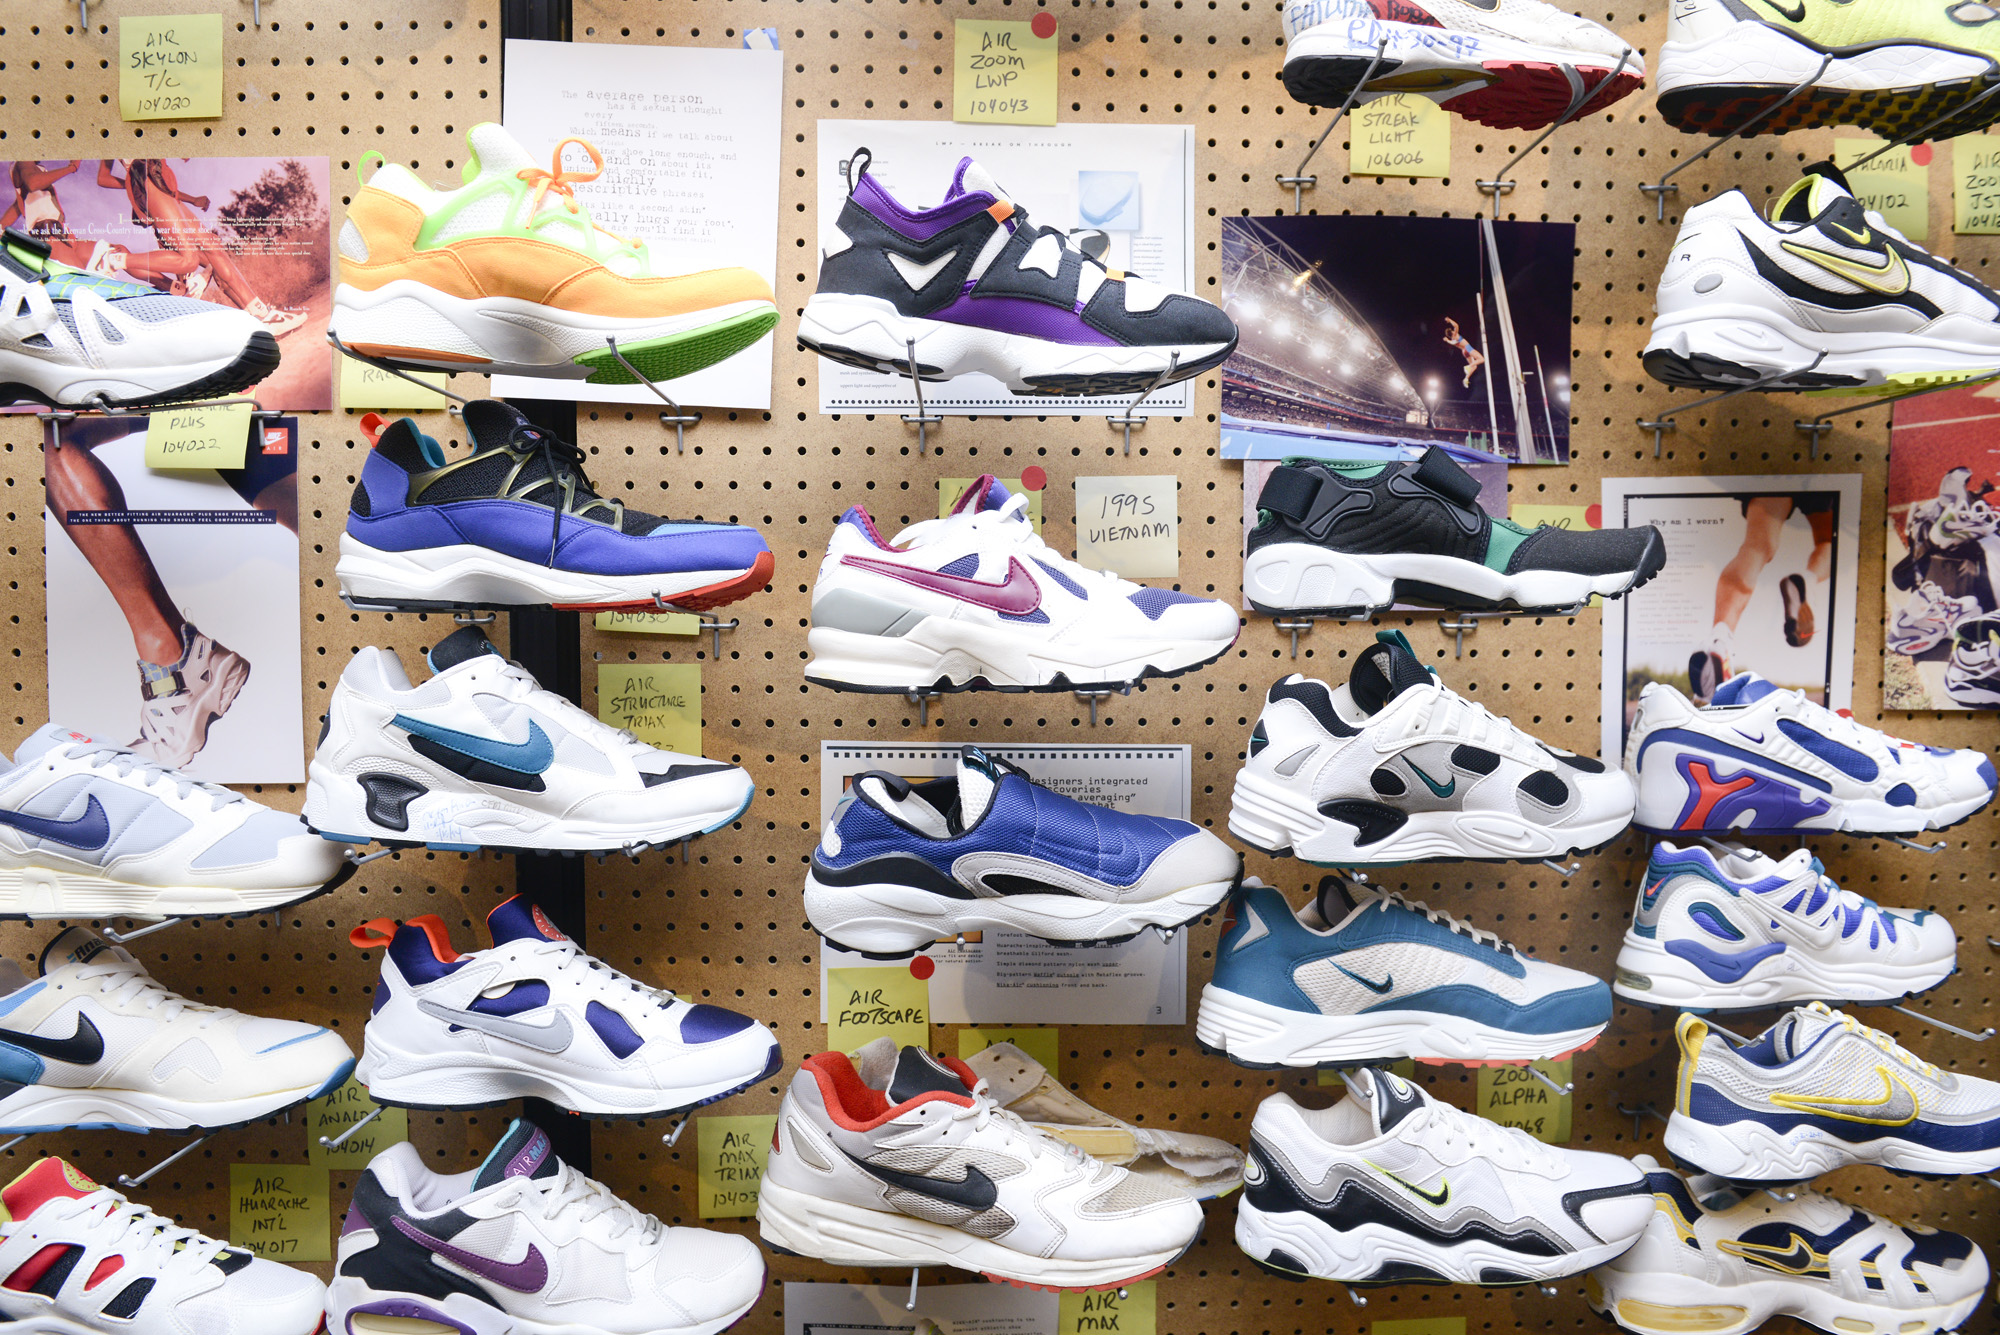 Coveture Inside Nike Archive 1